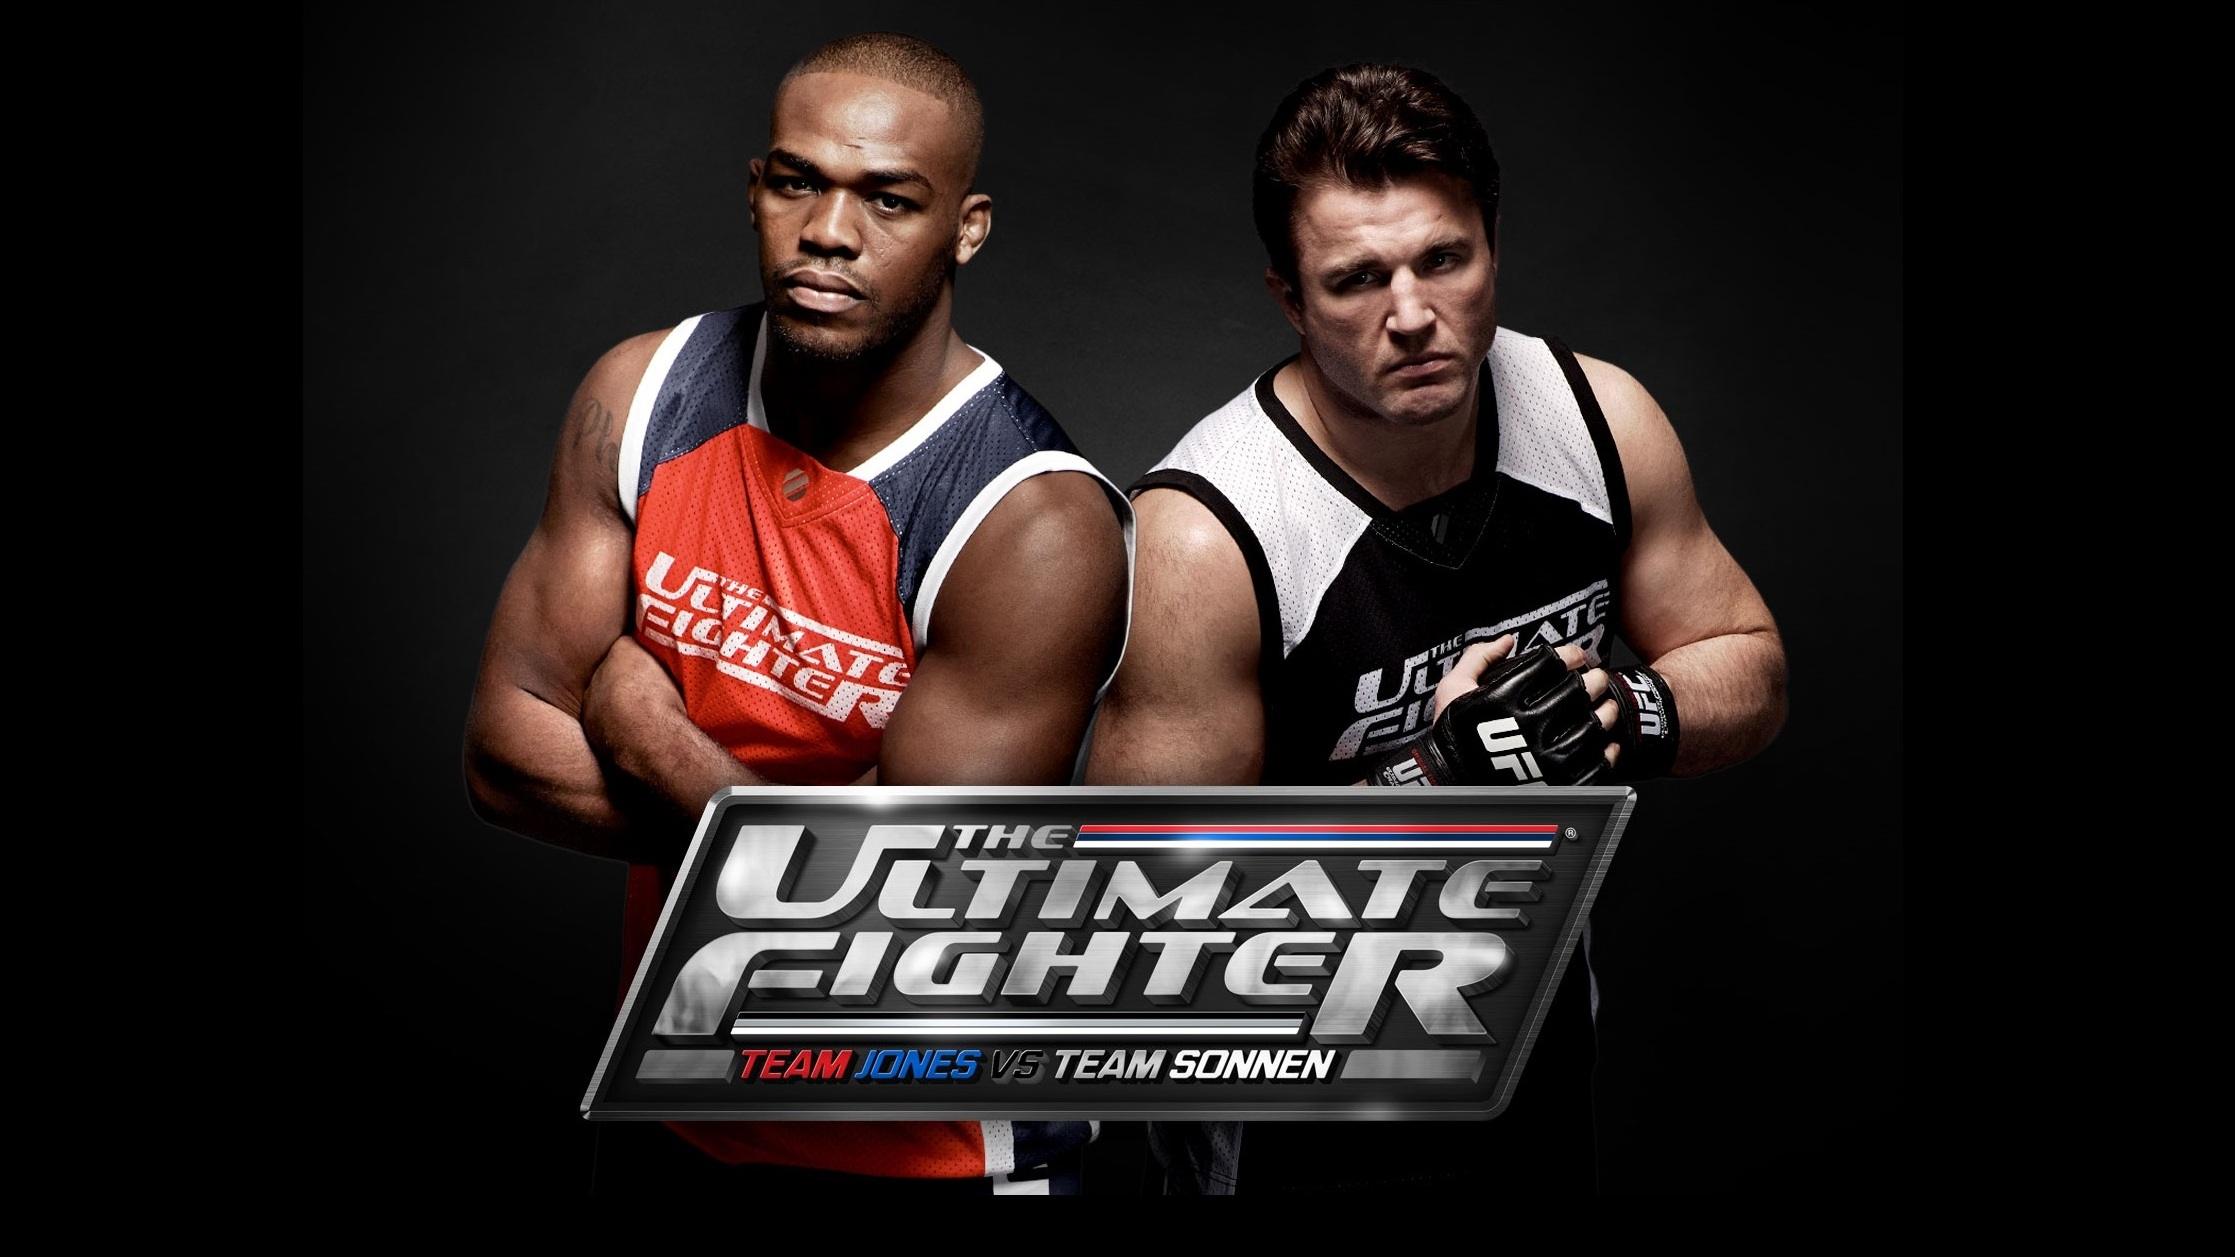 The Ultimate Fighter: Team Jones vs. Team Sonnen